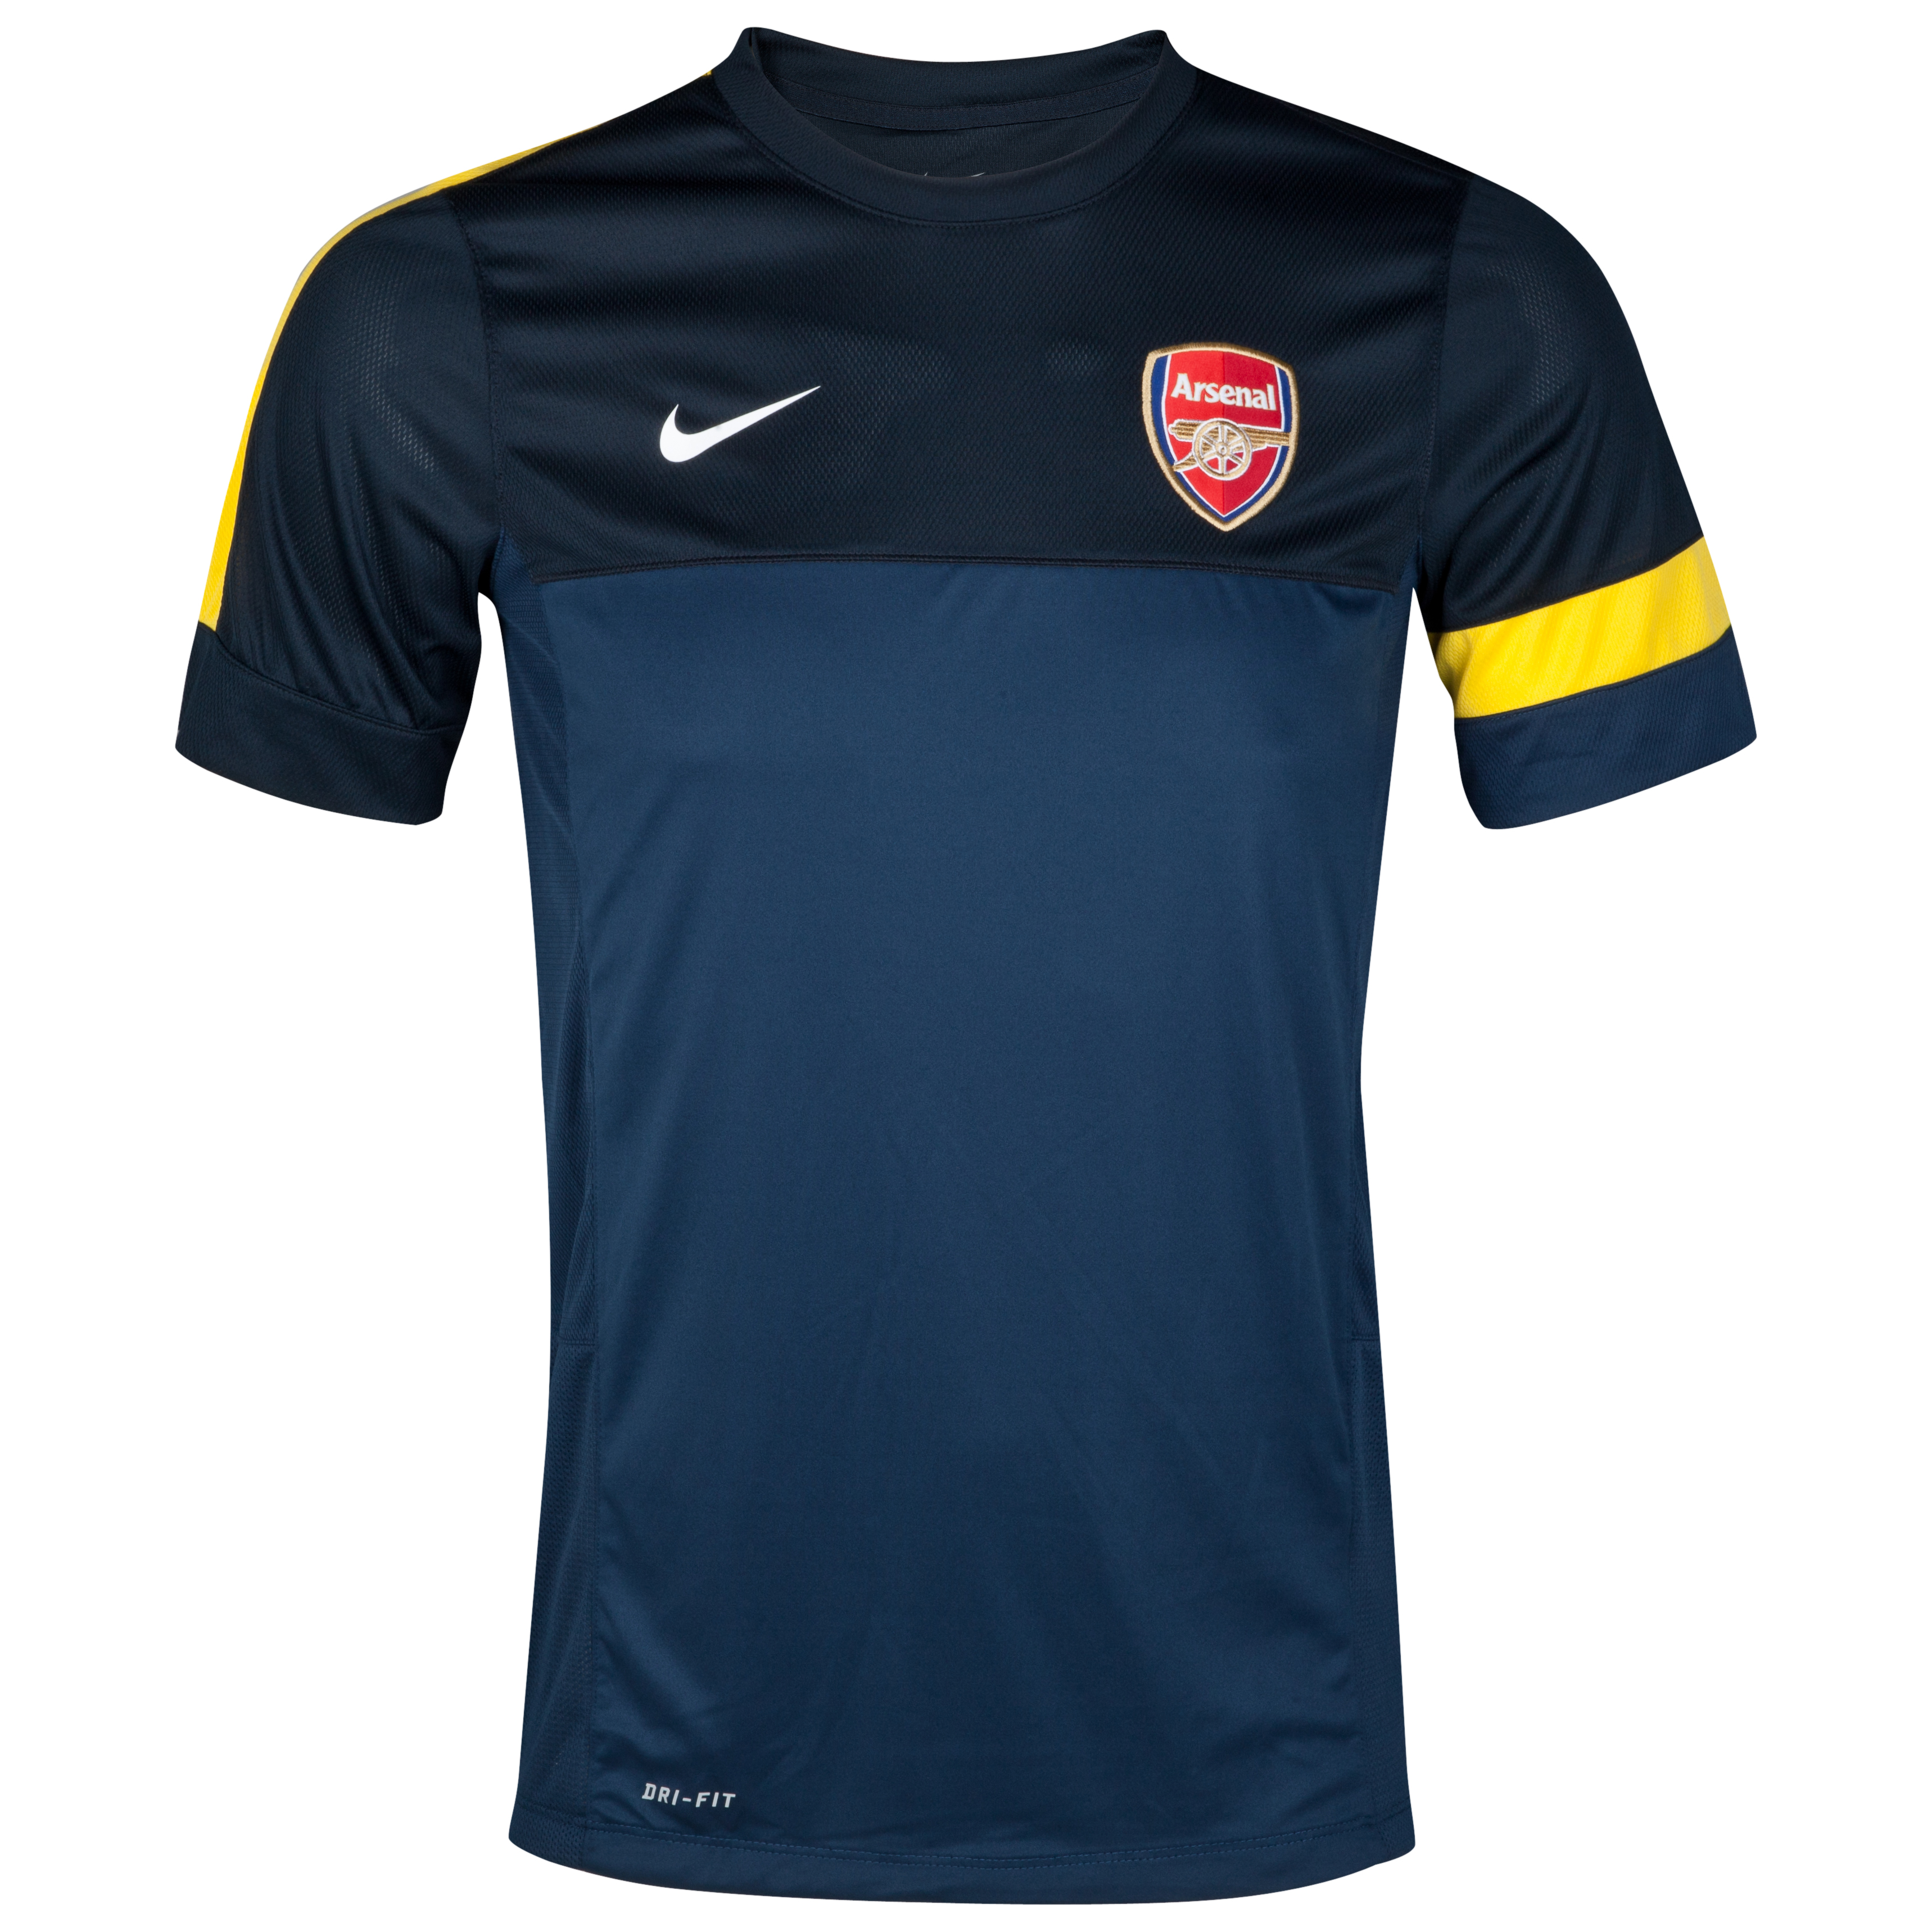 Arsenal Training Top 1 - Light Midnight/Dark Obsidian/White